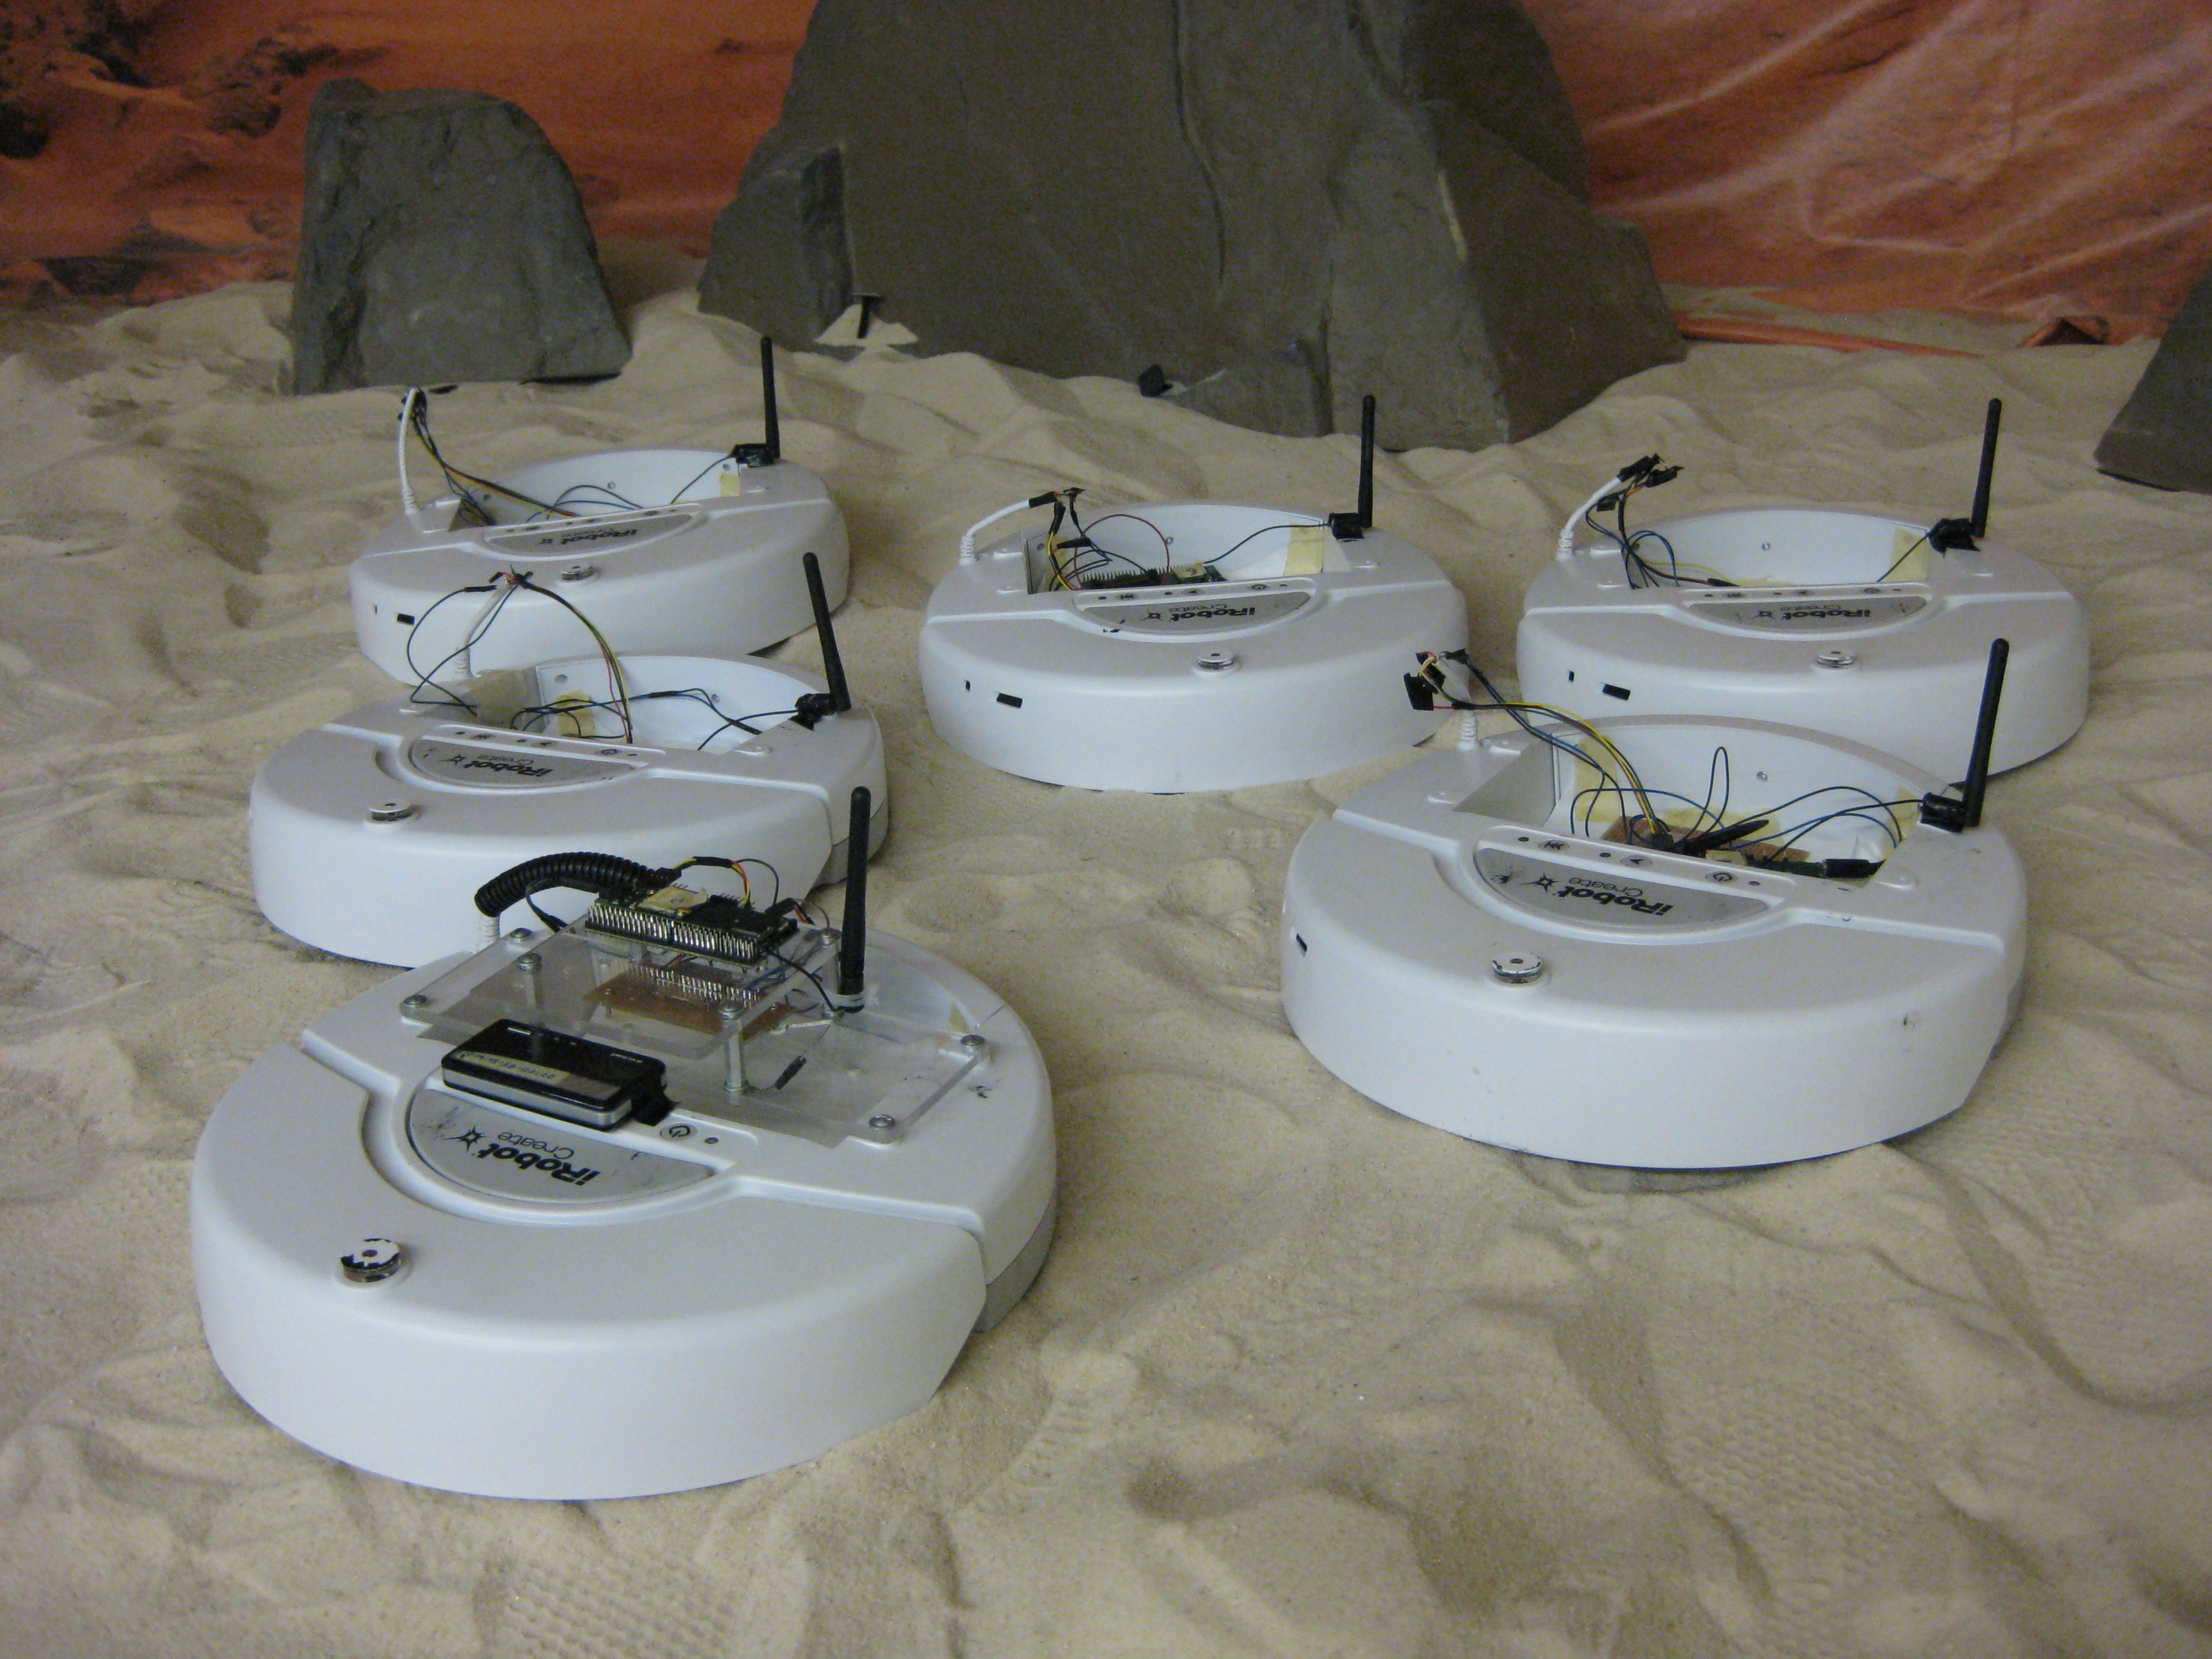 A team of iRobot Create robots at the Human-Automation Systems Lab, Georgia Institute of Technology.